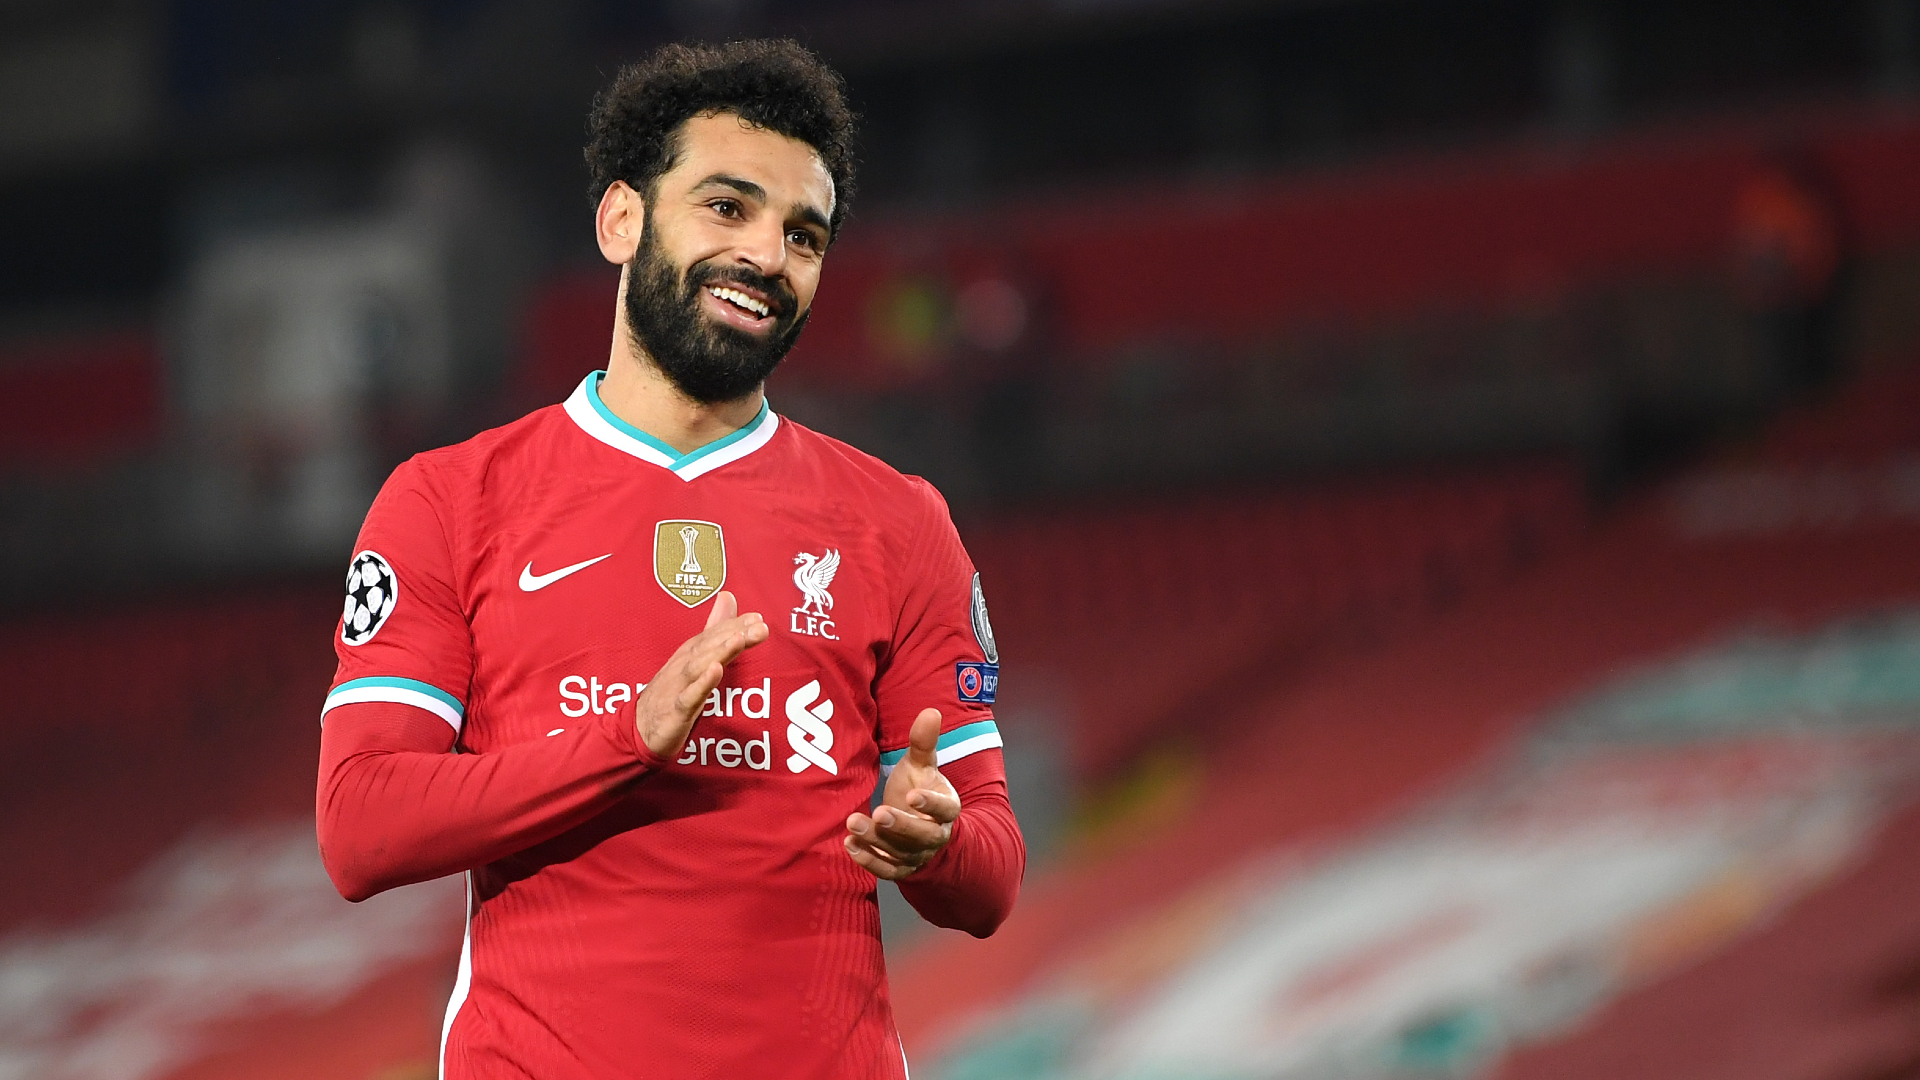 Salah beats Fabinho and Firmino to Liverpool's Player of the Month award